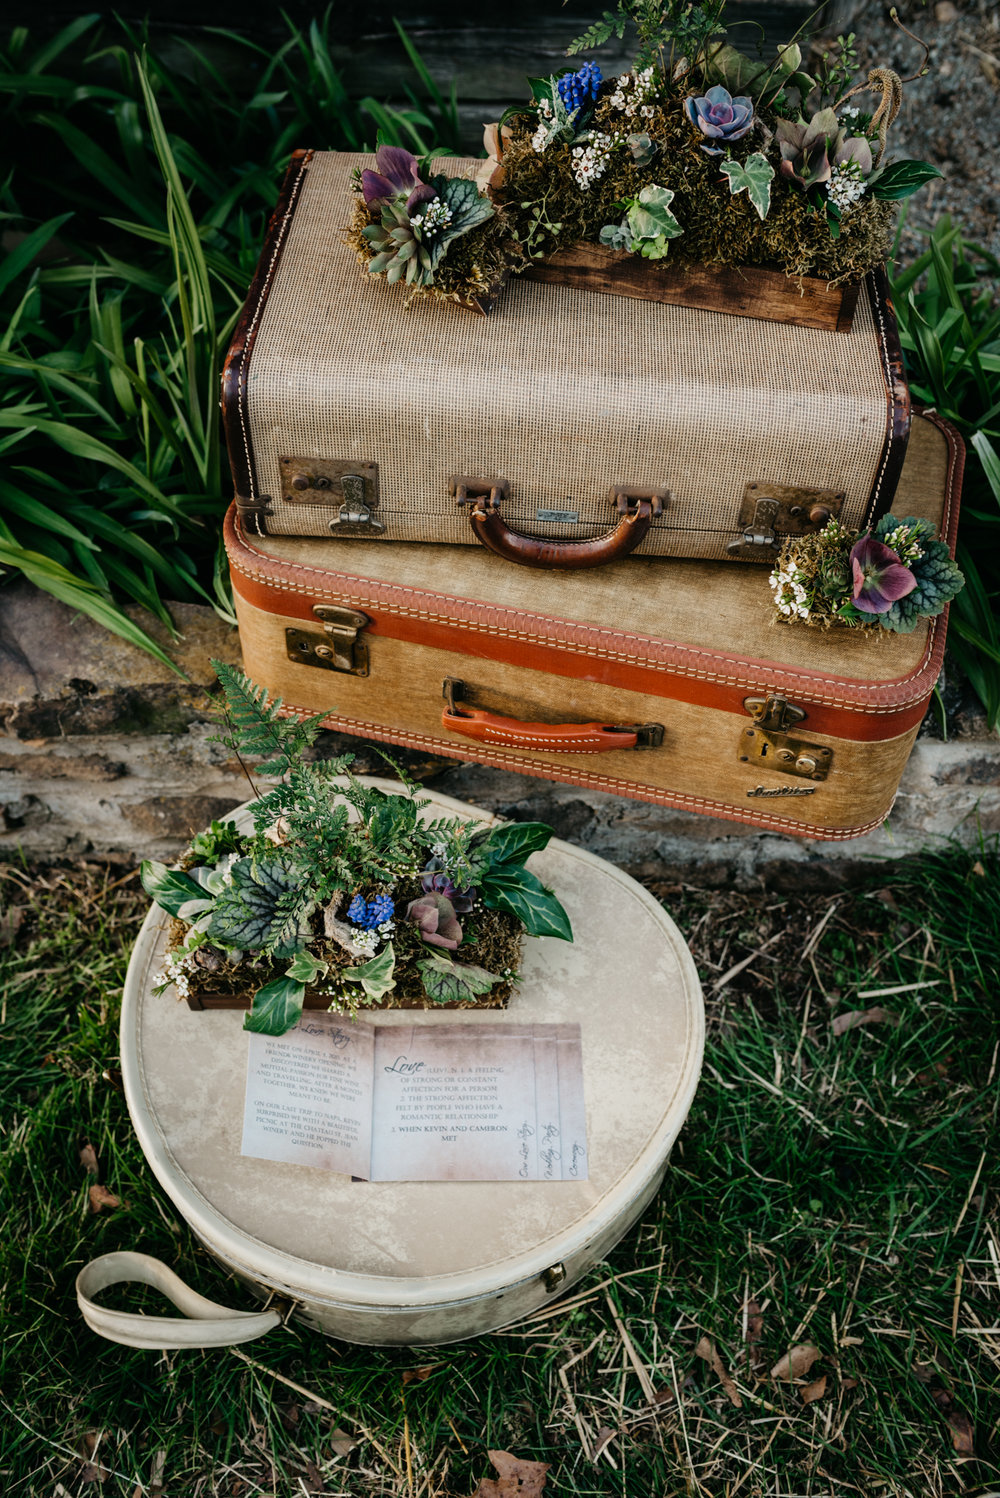 The suitcases, flowers, and invitations were setup outside by the barn at the rustic styled engagement session with Rose Trail Images at Windy Hill Farm near Raleigh, NC.